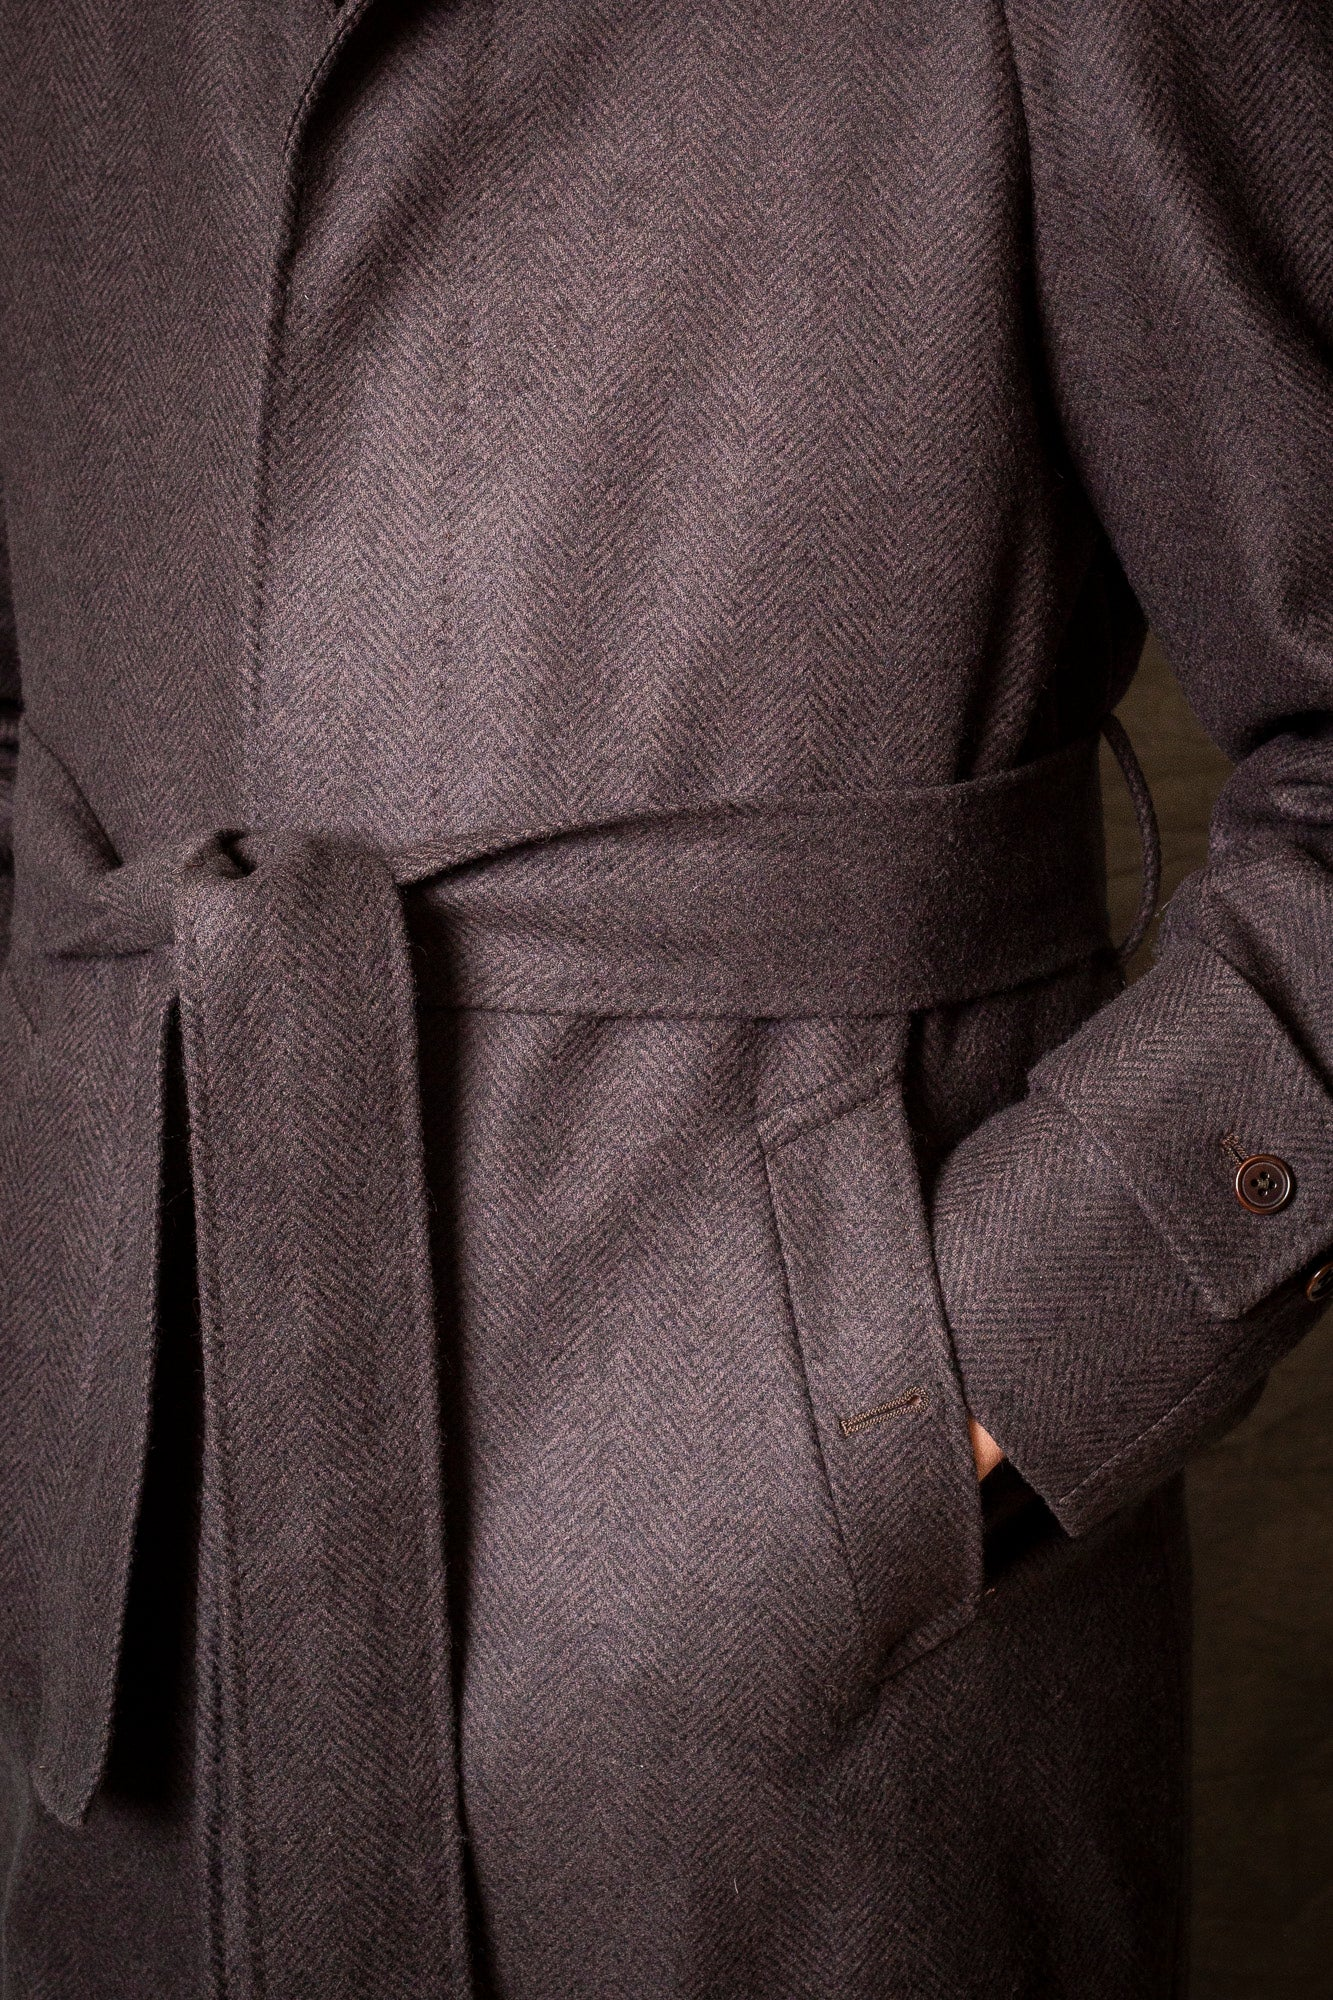 BROWN HERRINGBONE RAGLAN COAT – Made in Italy